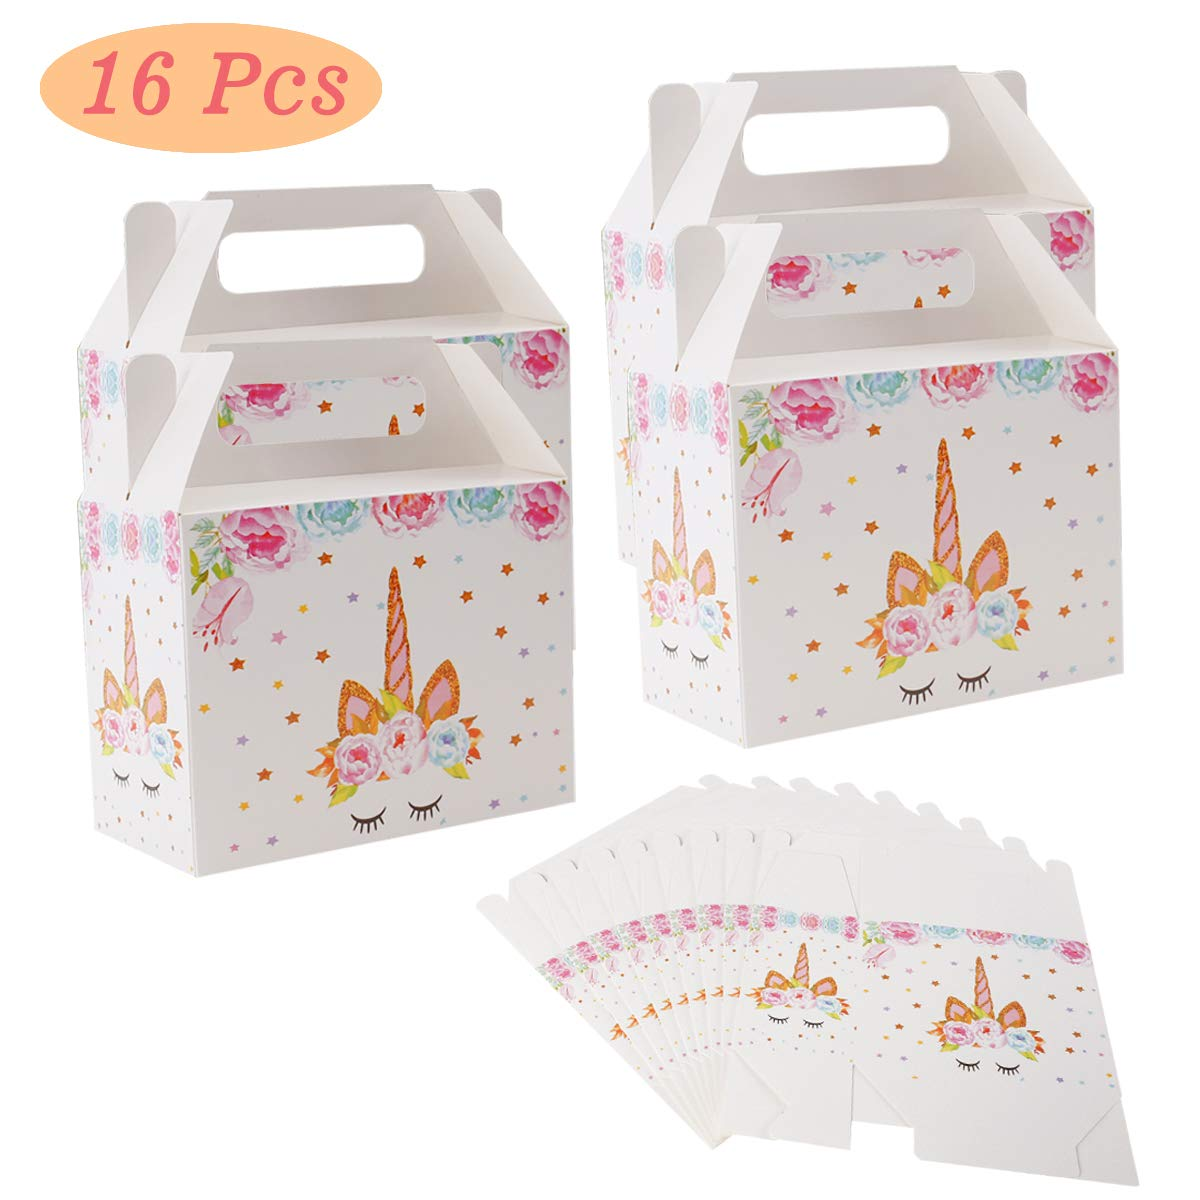 Unicorn Gift Boxes Party Supplies, Unicorn Party Bags Faver For Unicorn Theme Birthday Party Decorations Set Of 16, Perfect for Kids Girl Boy Child